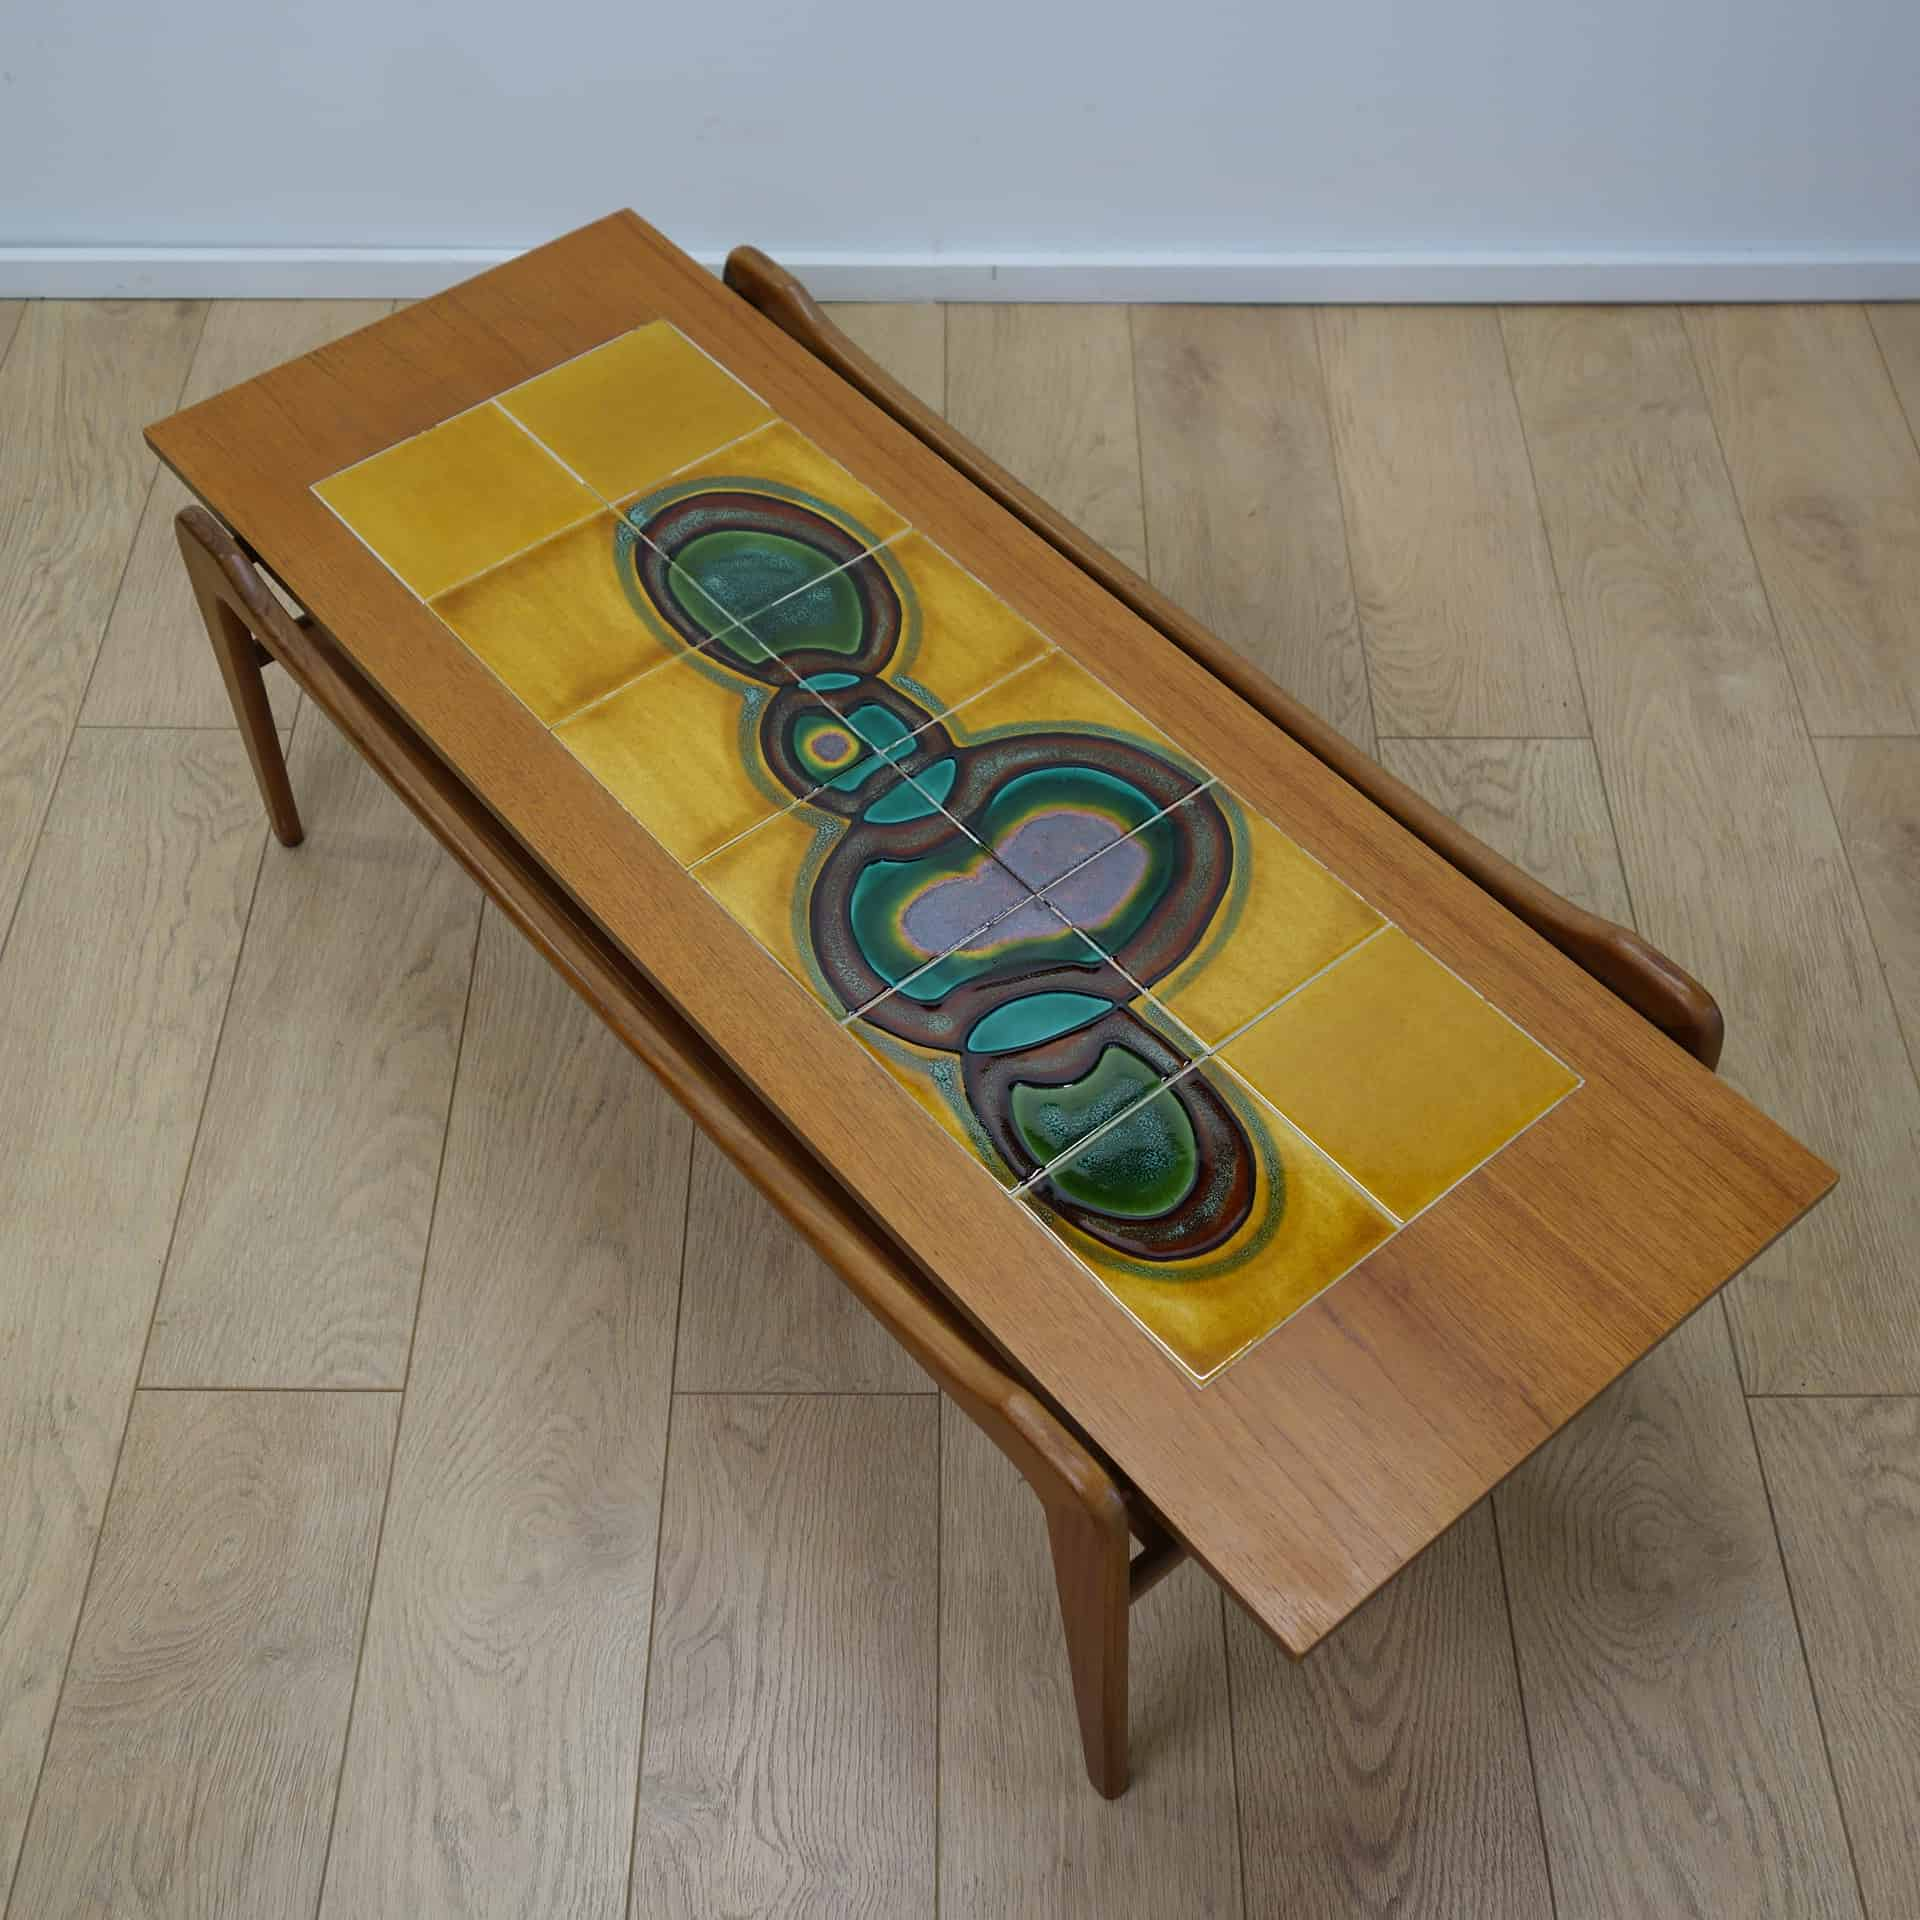 1960s teak tiled top coffee table